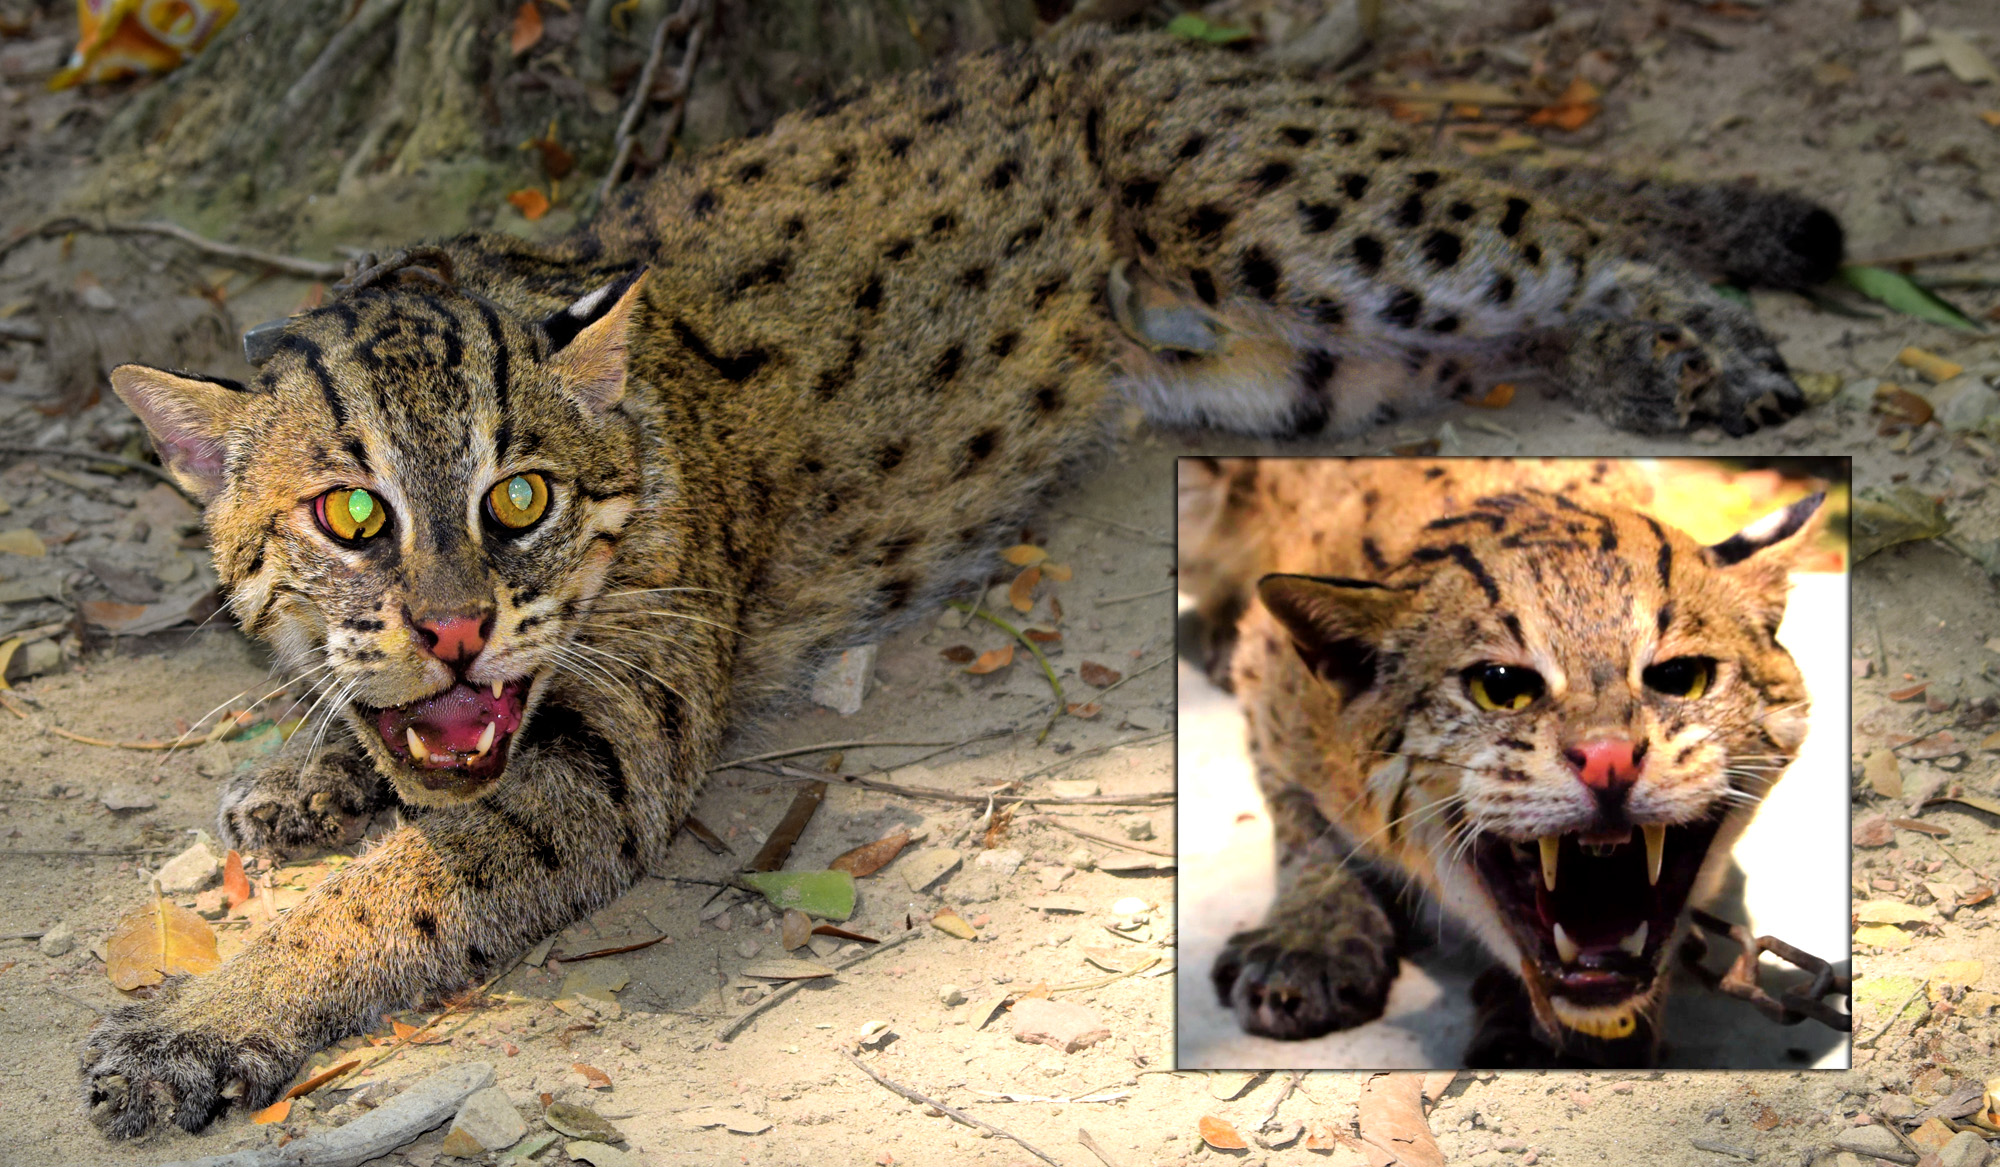 Fishing cat rescued